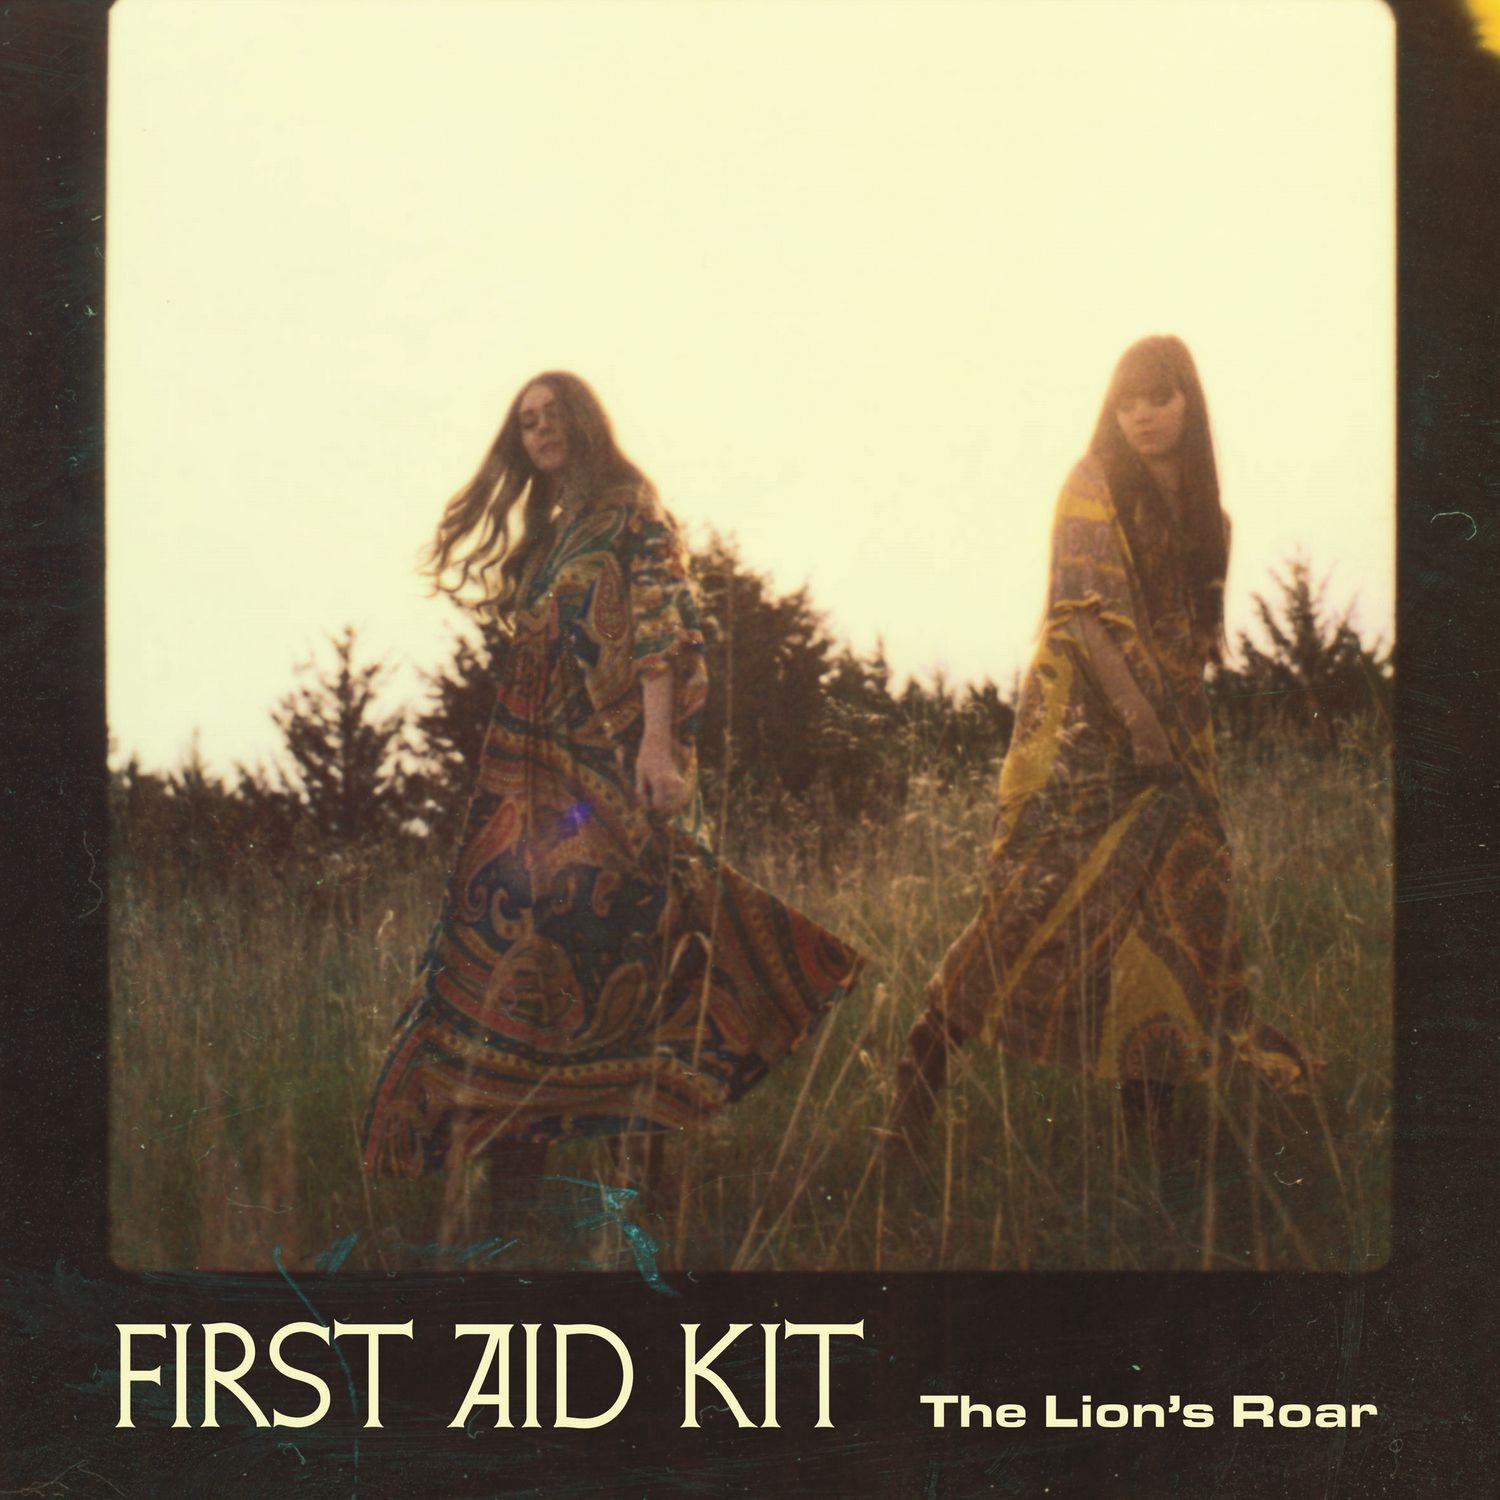 First Aid Kit - The Lion's Roar album cover